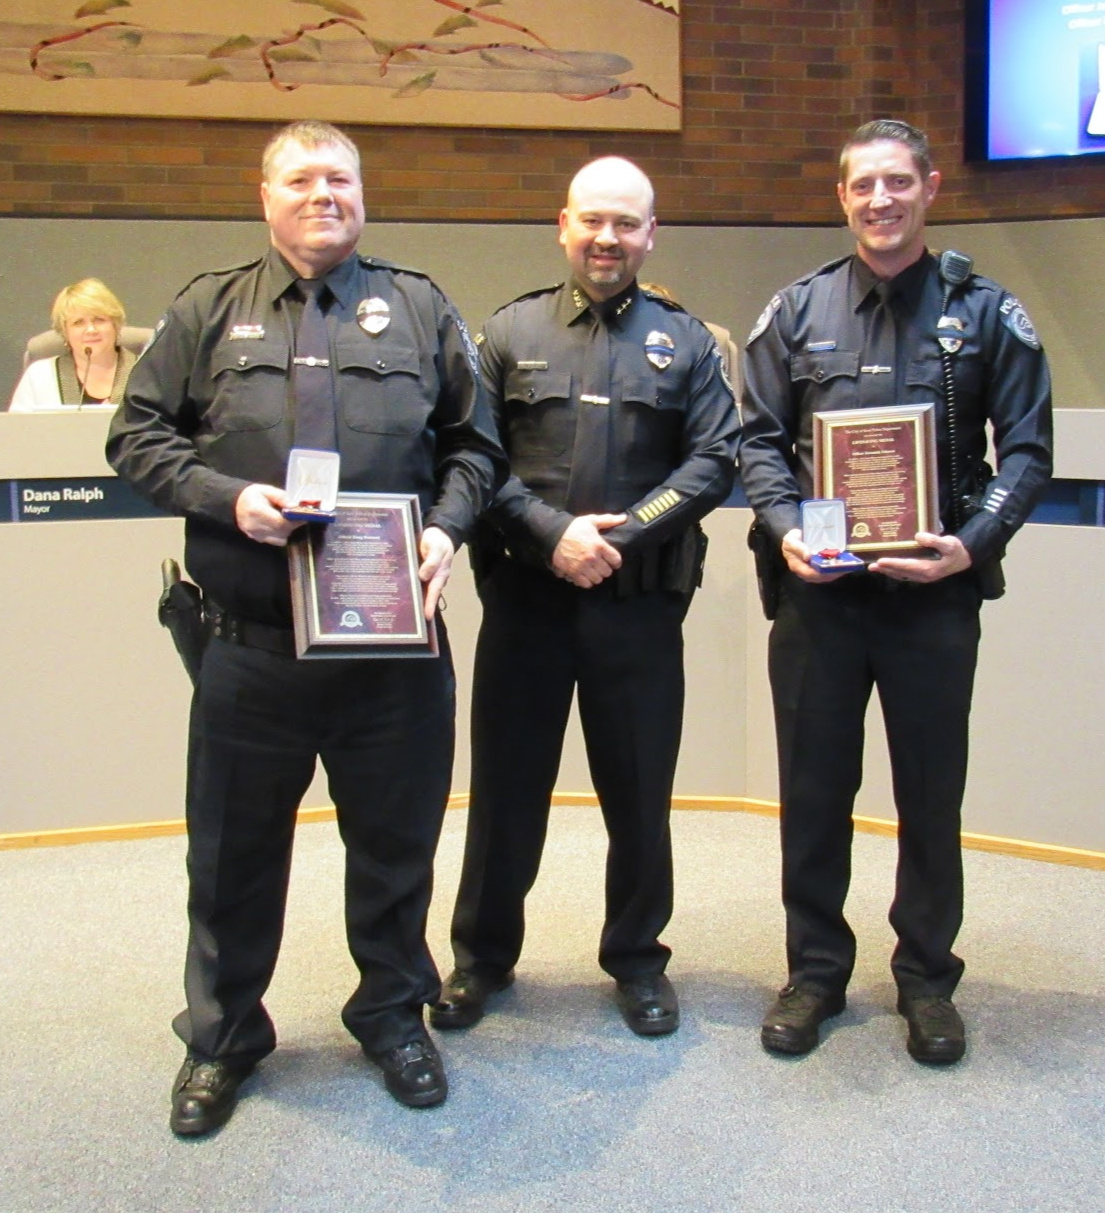 Officers Westcott and Johnson received lifesaving awards at the April 16, 2019 Kent City Council meeting.